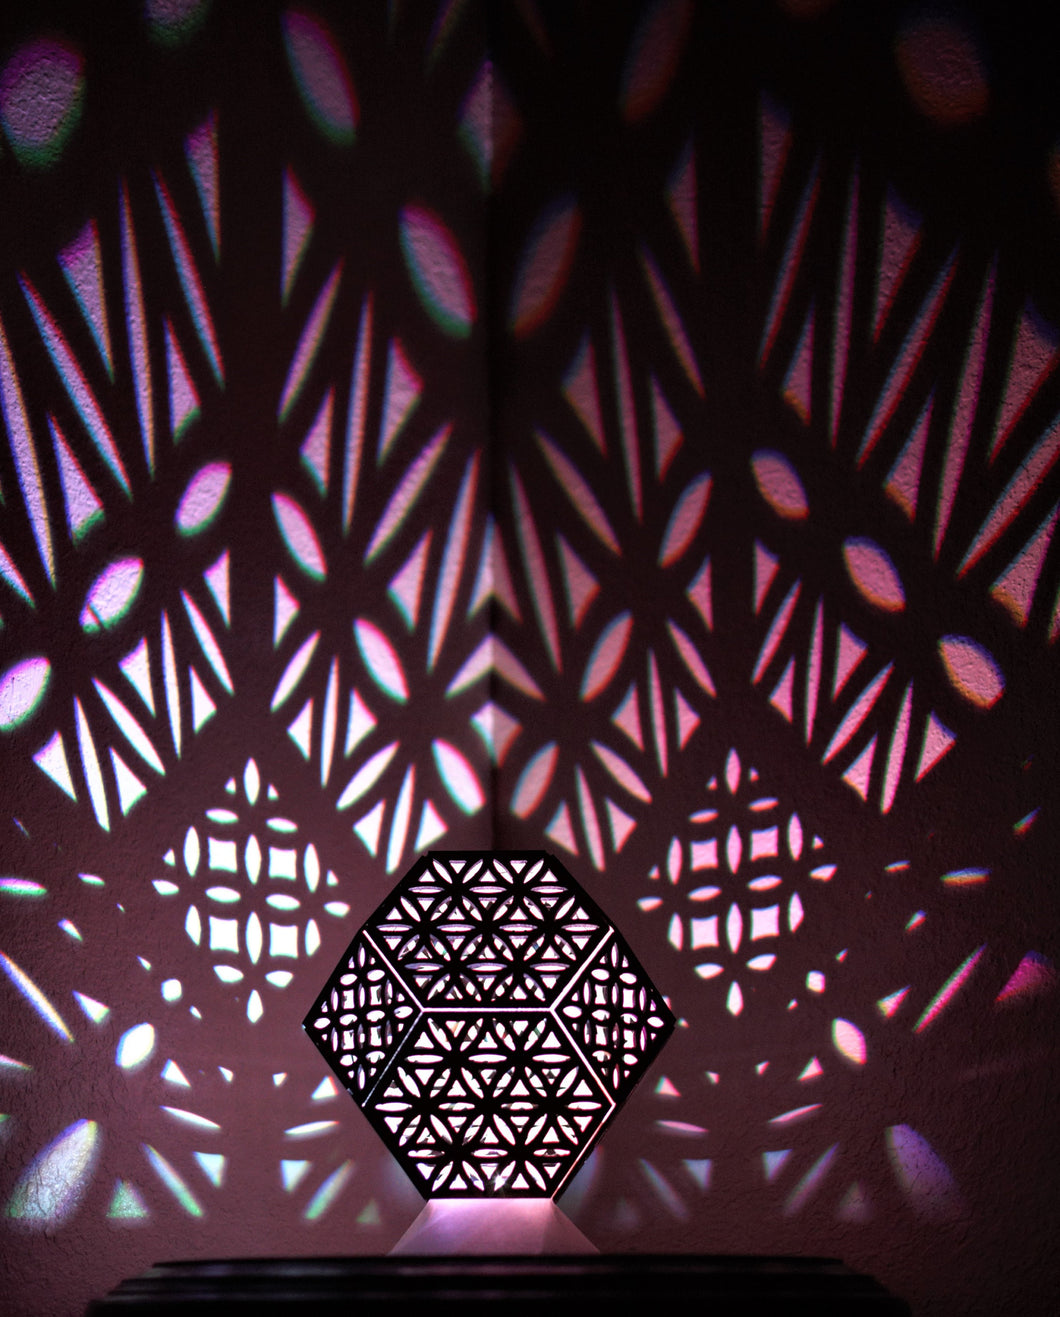 Lampgeo: Truncated Flower of Life